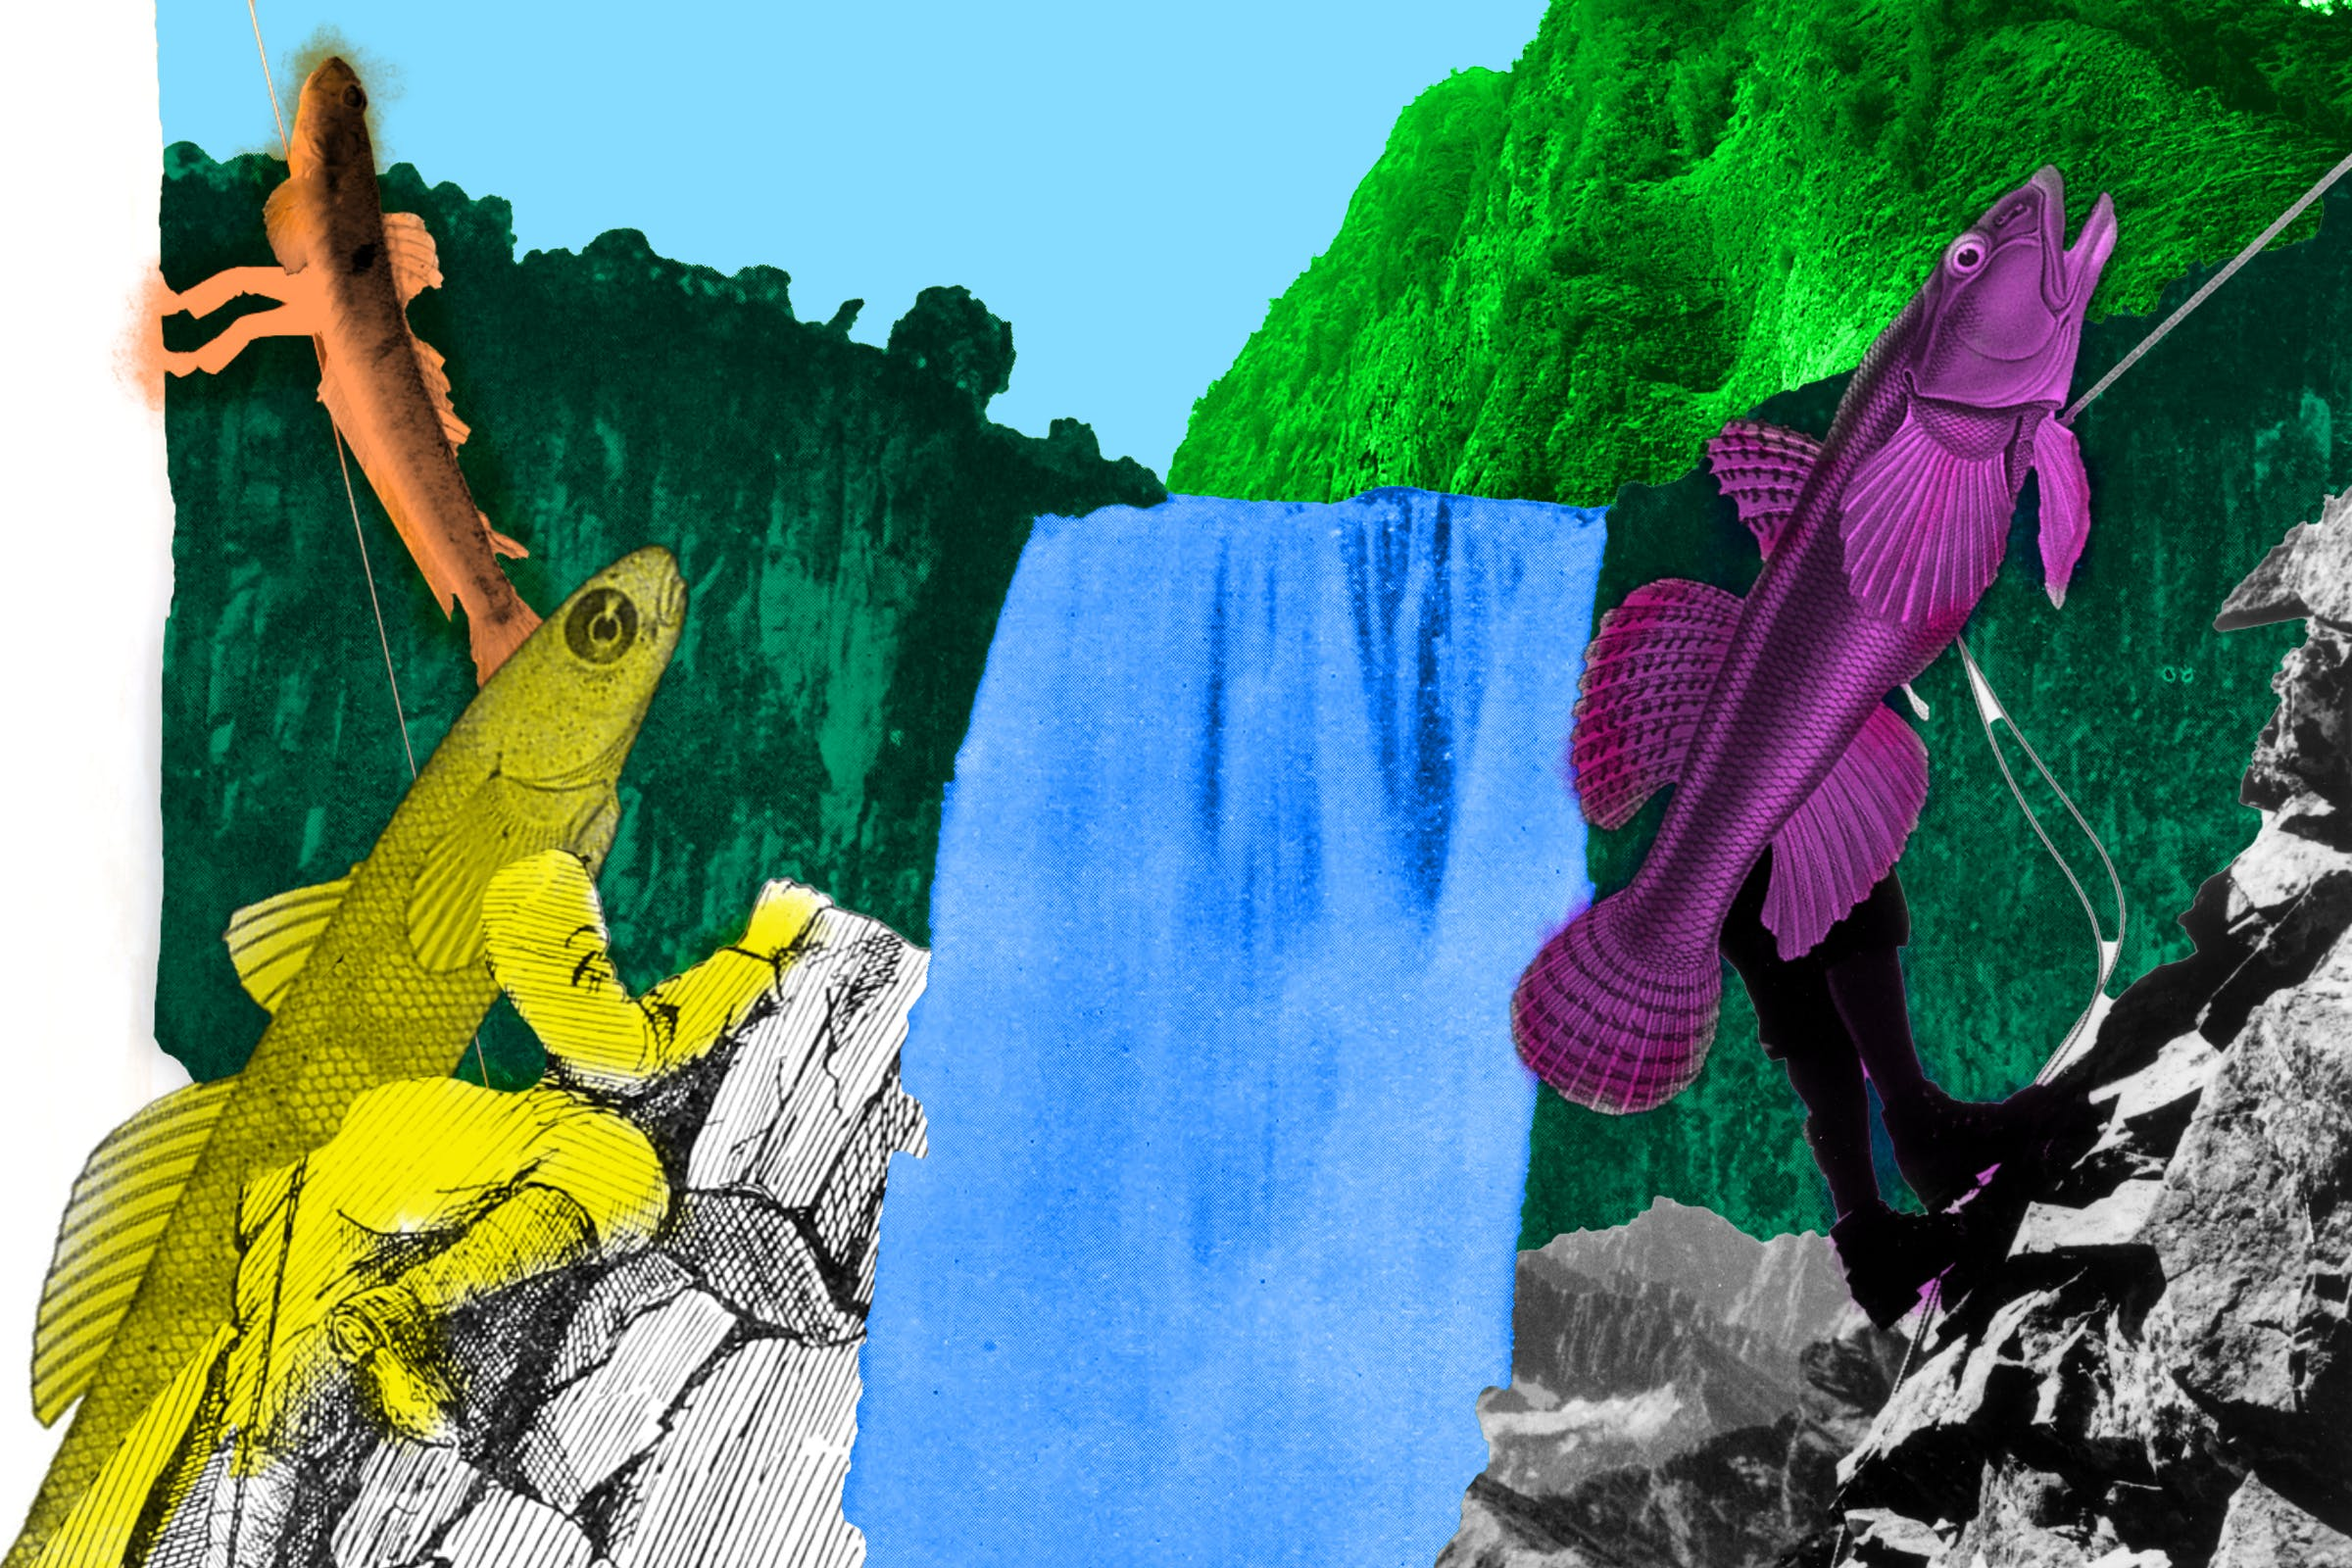 A bunch of goofy looking fish are trying to climb a waterfall using mountain climbing gear.